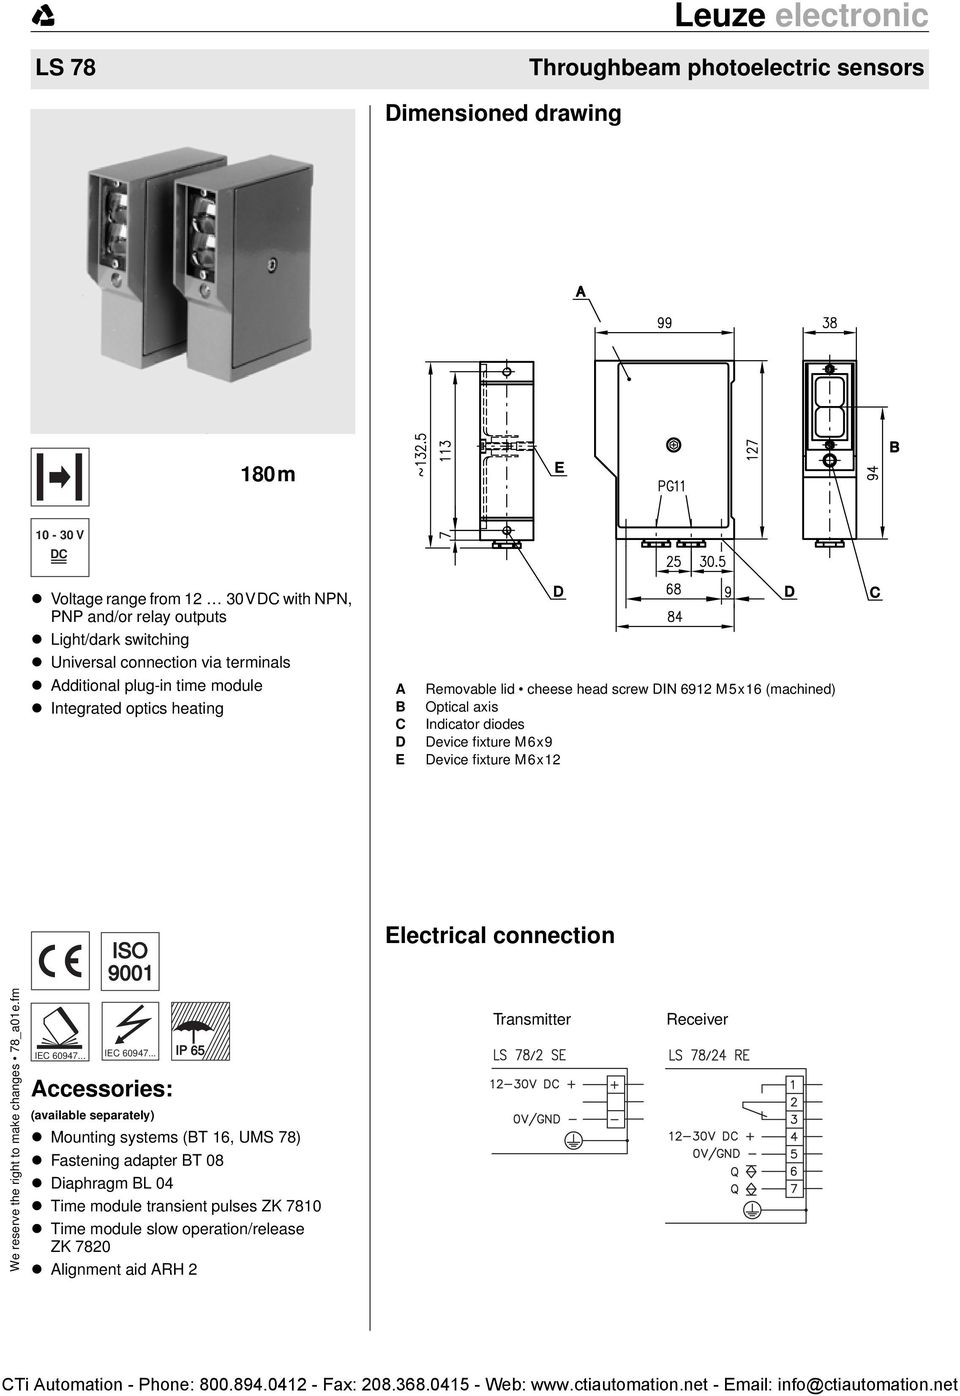 Throughbeam Photoelectric Sensors Dimensioned Drawing Electrical Photocell Circuit Diagram In Addition 12 Volt Wiring Integrated Optics Heating A B C D E Removable Lid Cheese Head Screw Din 6912 M5x16 Machined Optical